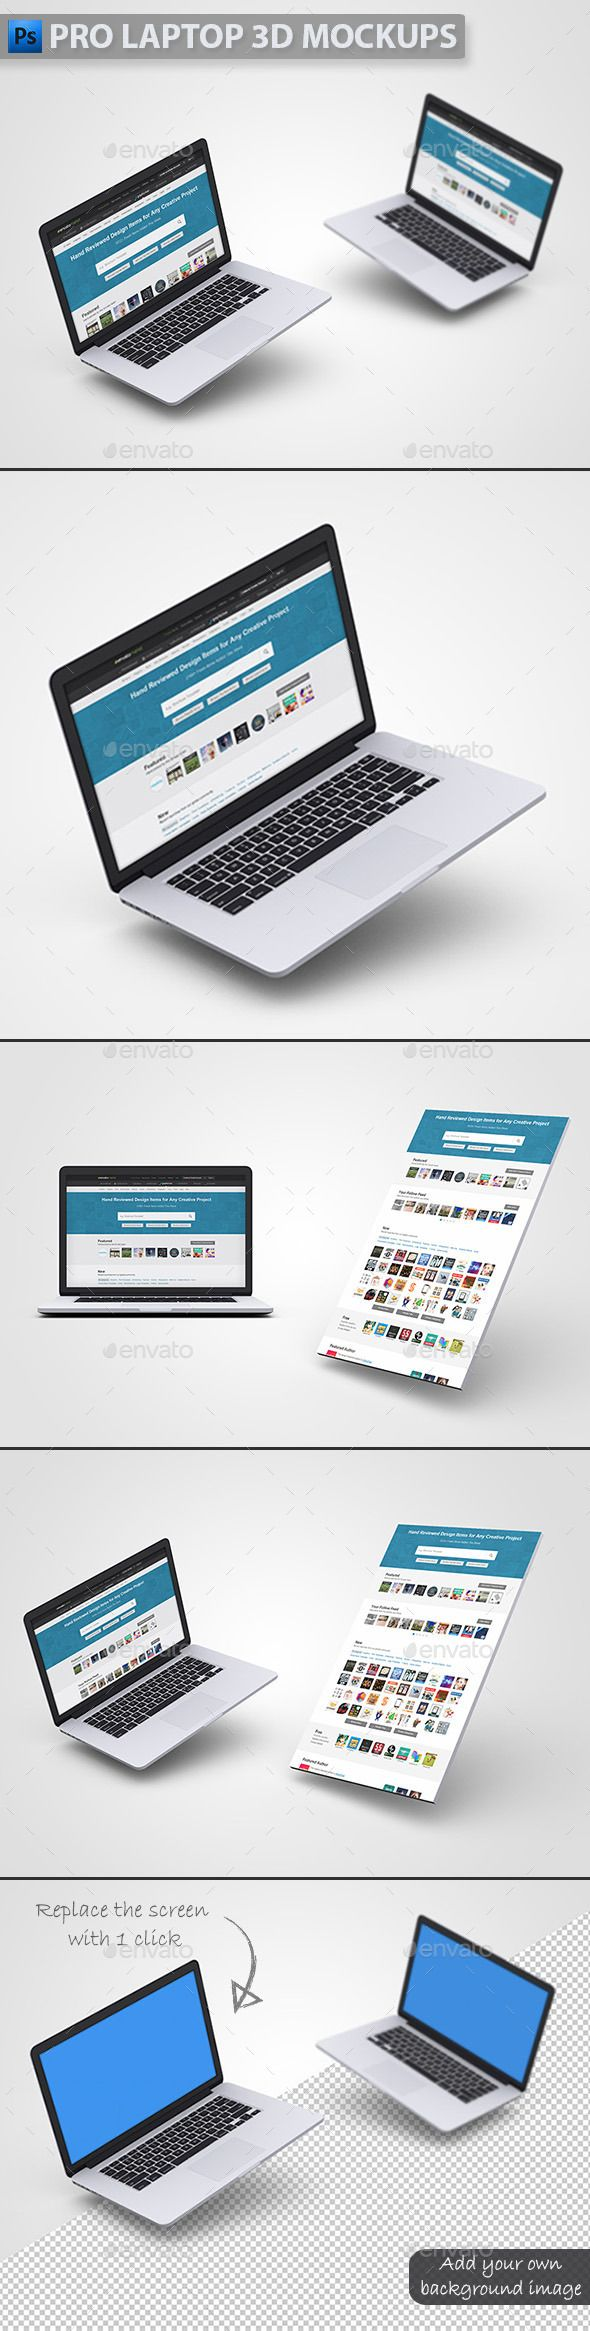 Pro Laptop 3d Mockups Showcase Your Website Iphone App New Theme Or Anything Technology Web Relatedsimple 3d Mockups Pro Laptop Mockup Business Card Mock Up